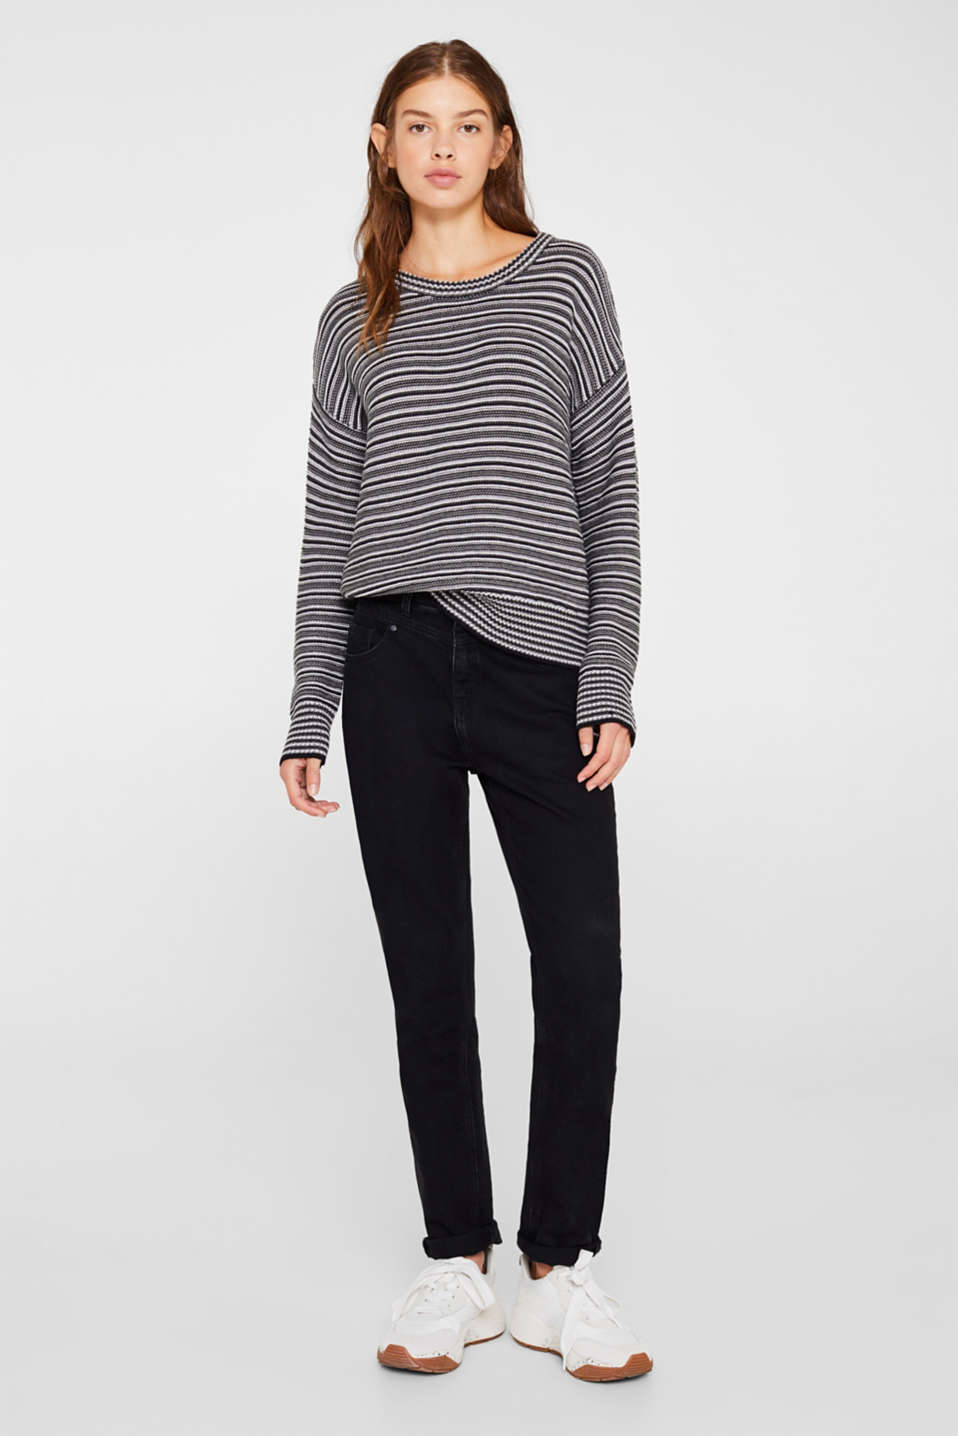 Jumper with a striped texture, GUNMETAL 5, detail